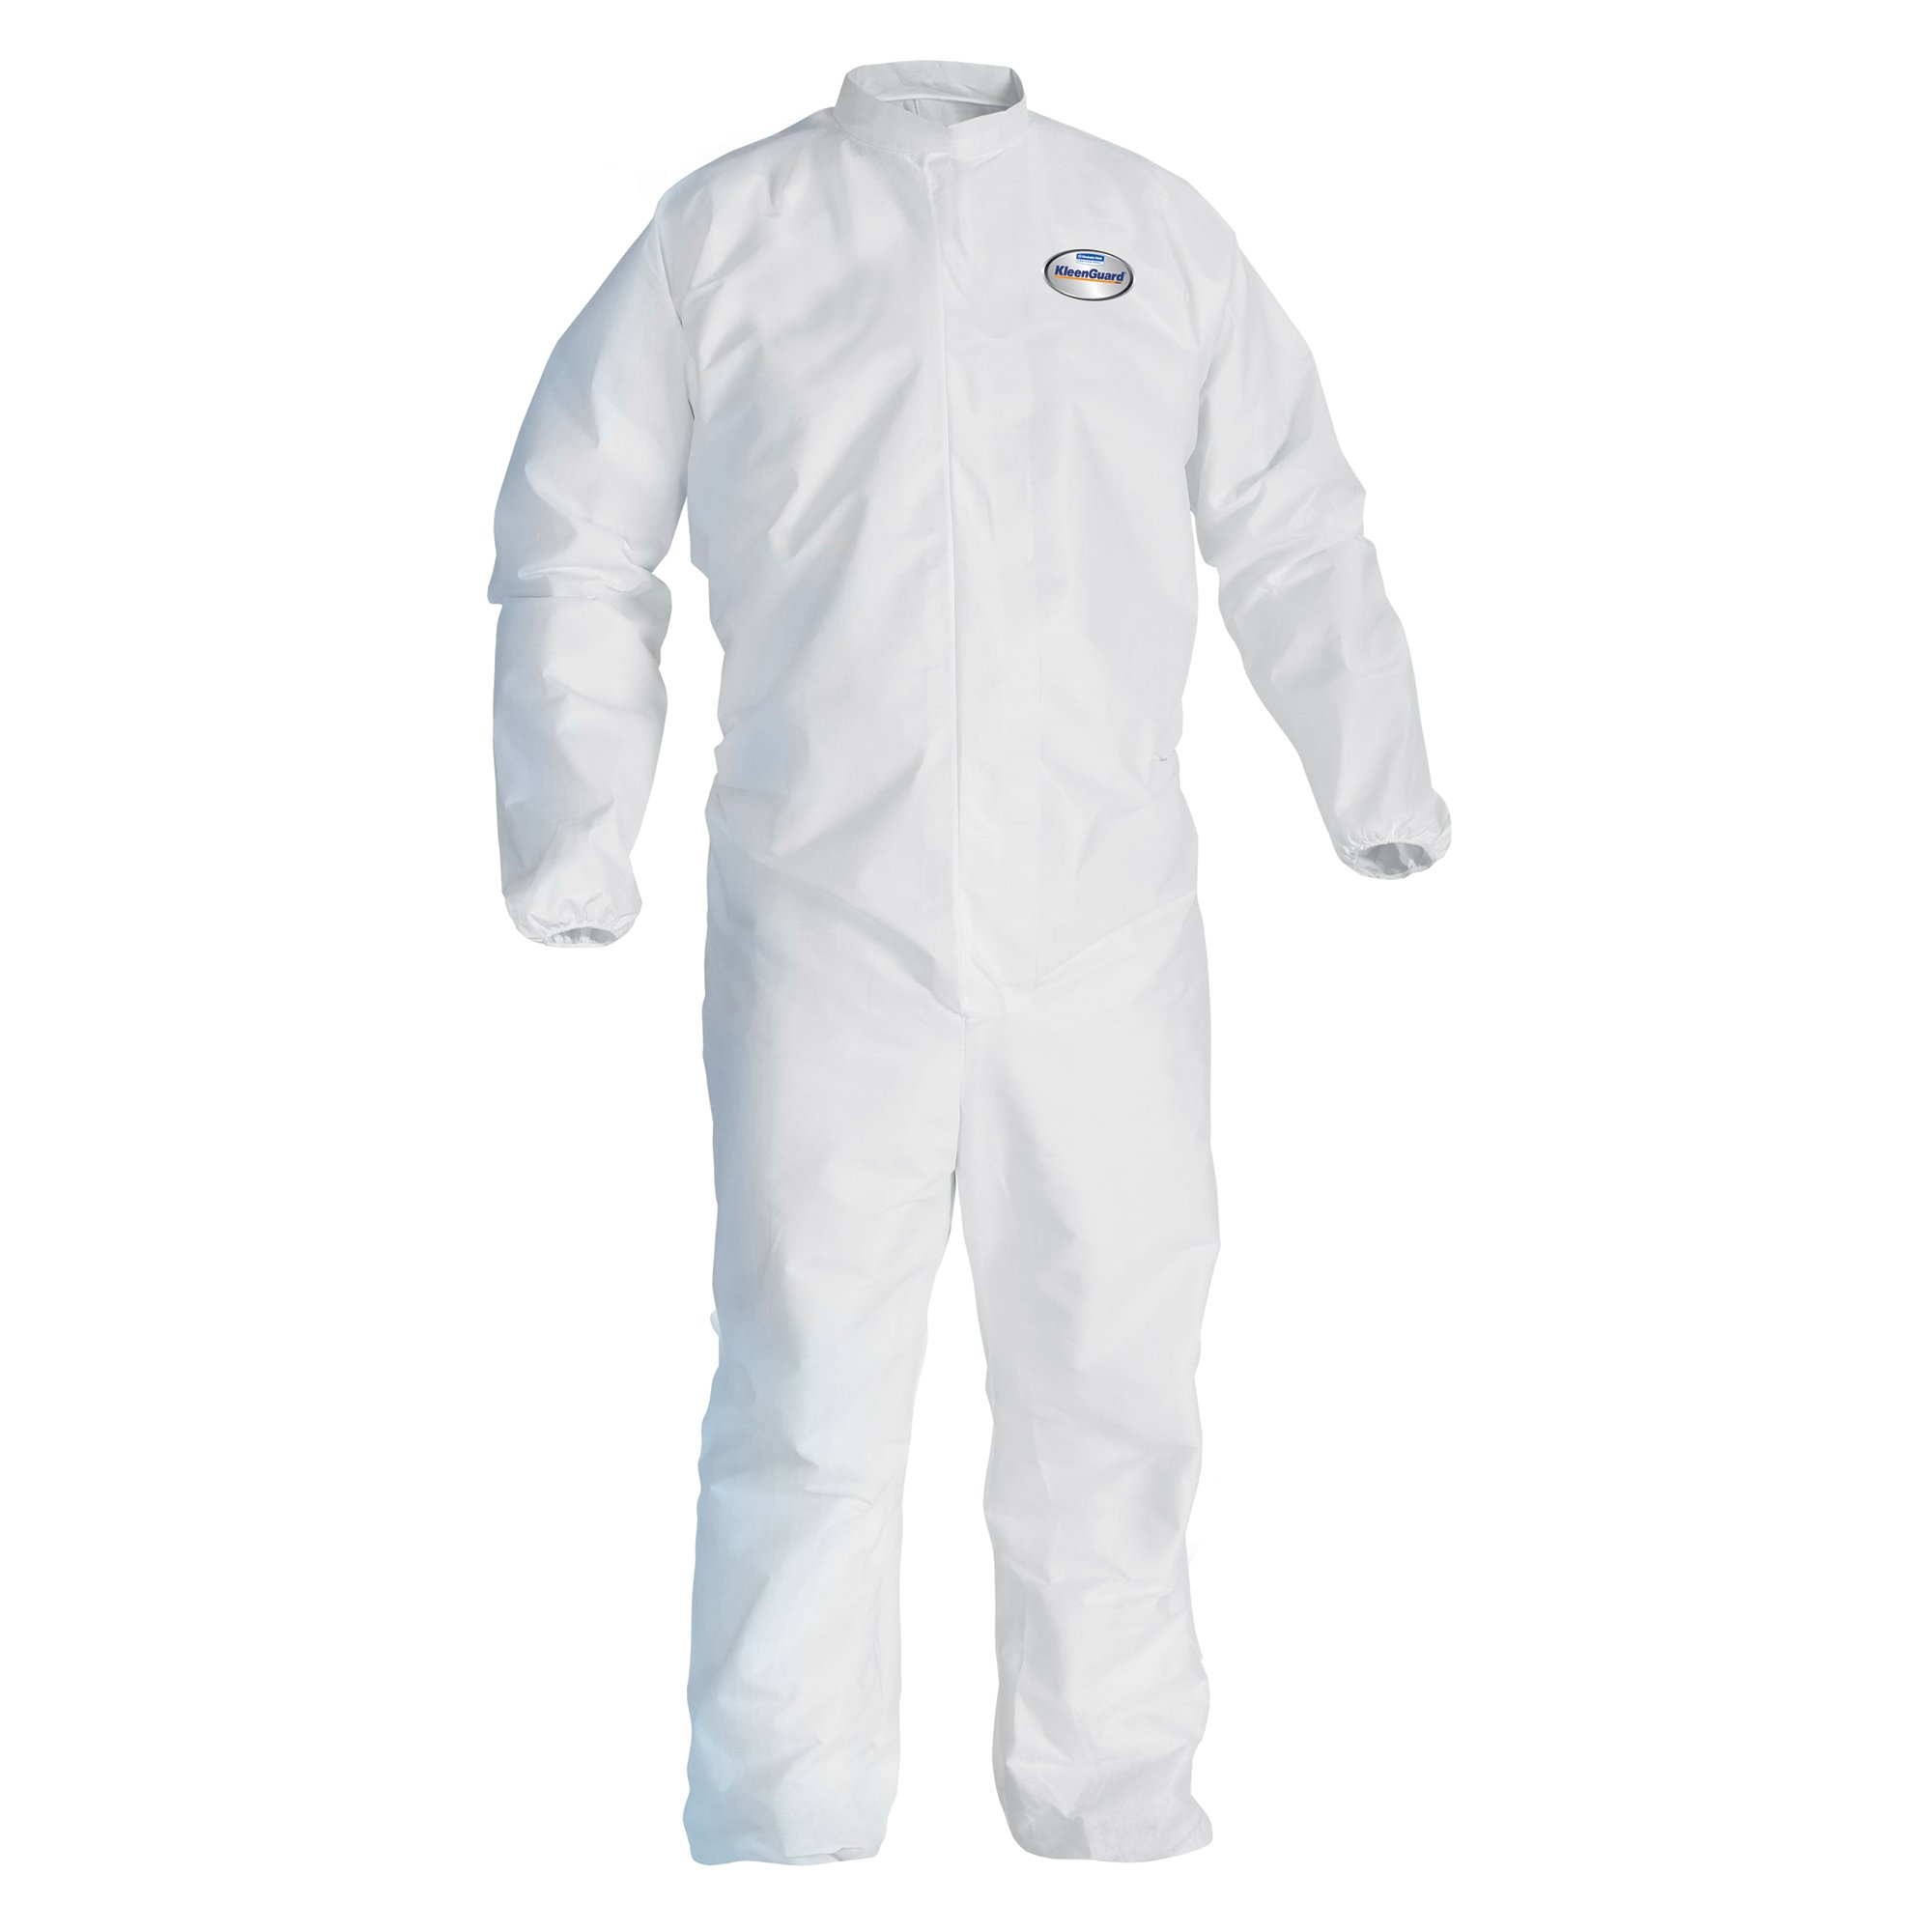 Kleenguard A30 Breathable Splash and Particle Protection Coveralls  (46104), REFLEX Design, Zip Front, Elastic Wrists & Ankles, White, XL, 25 / Case